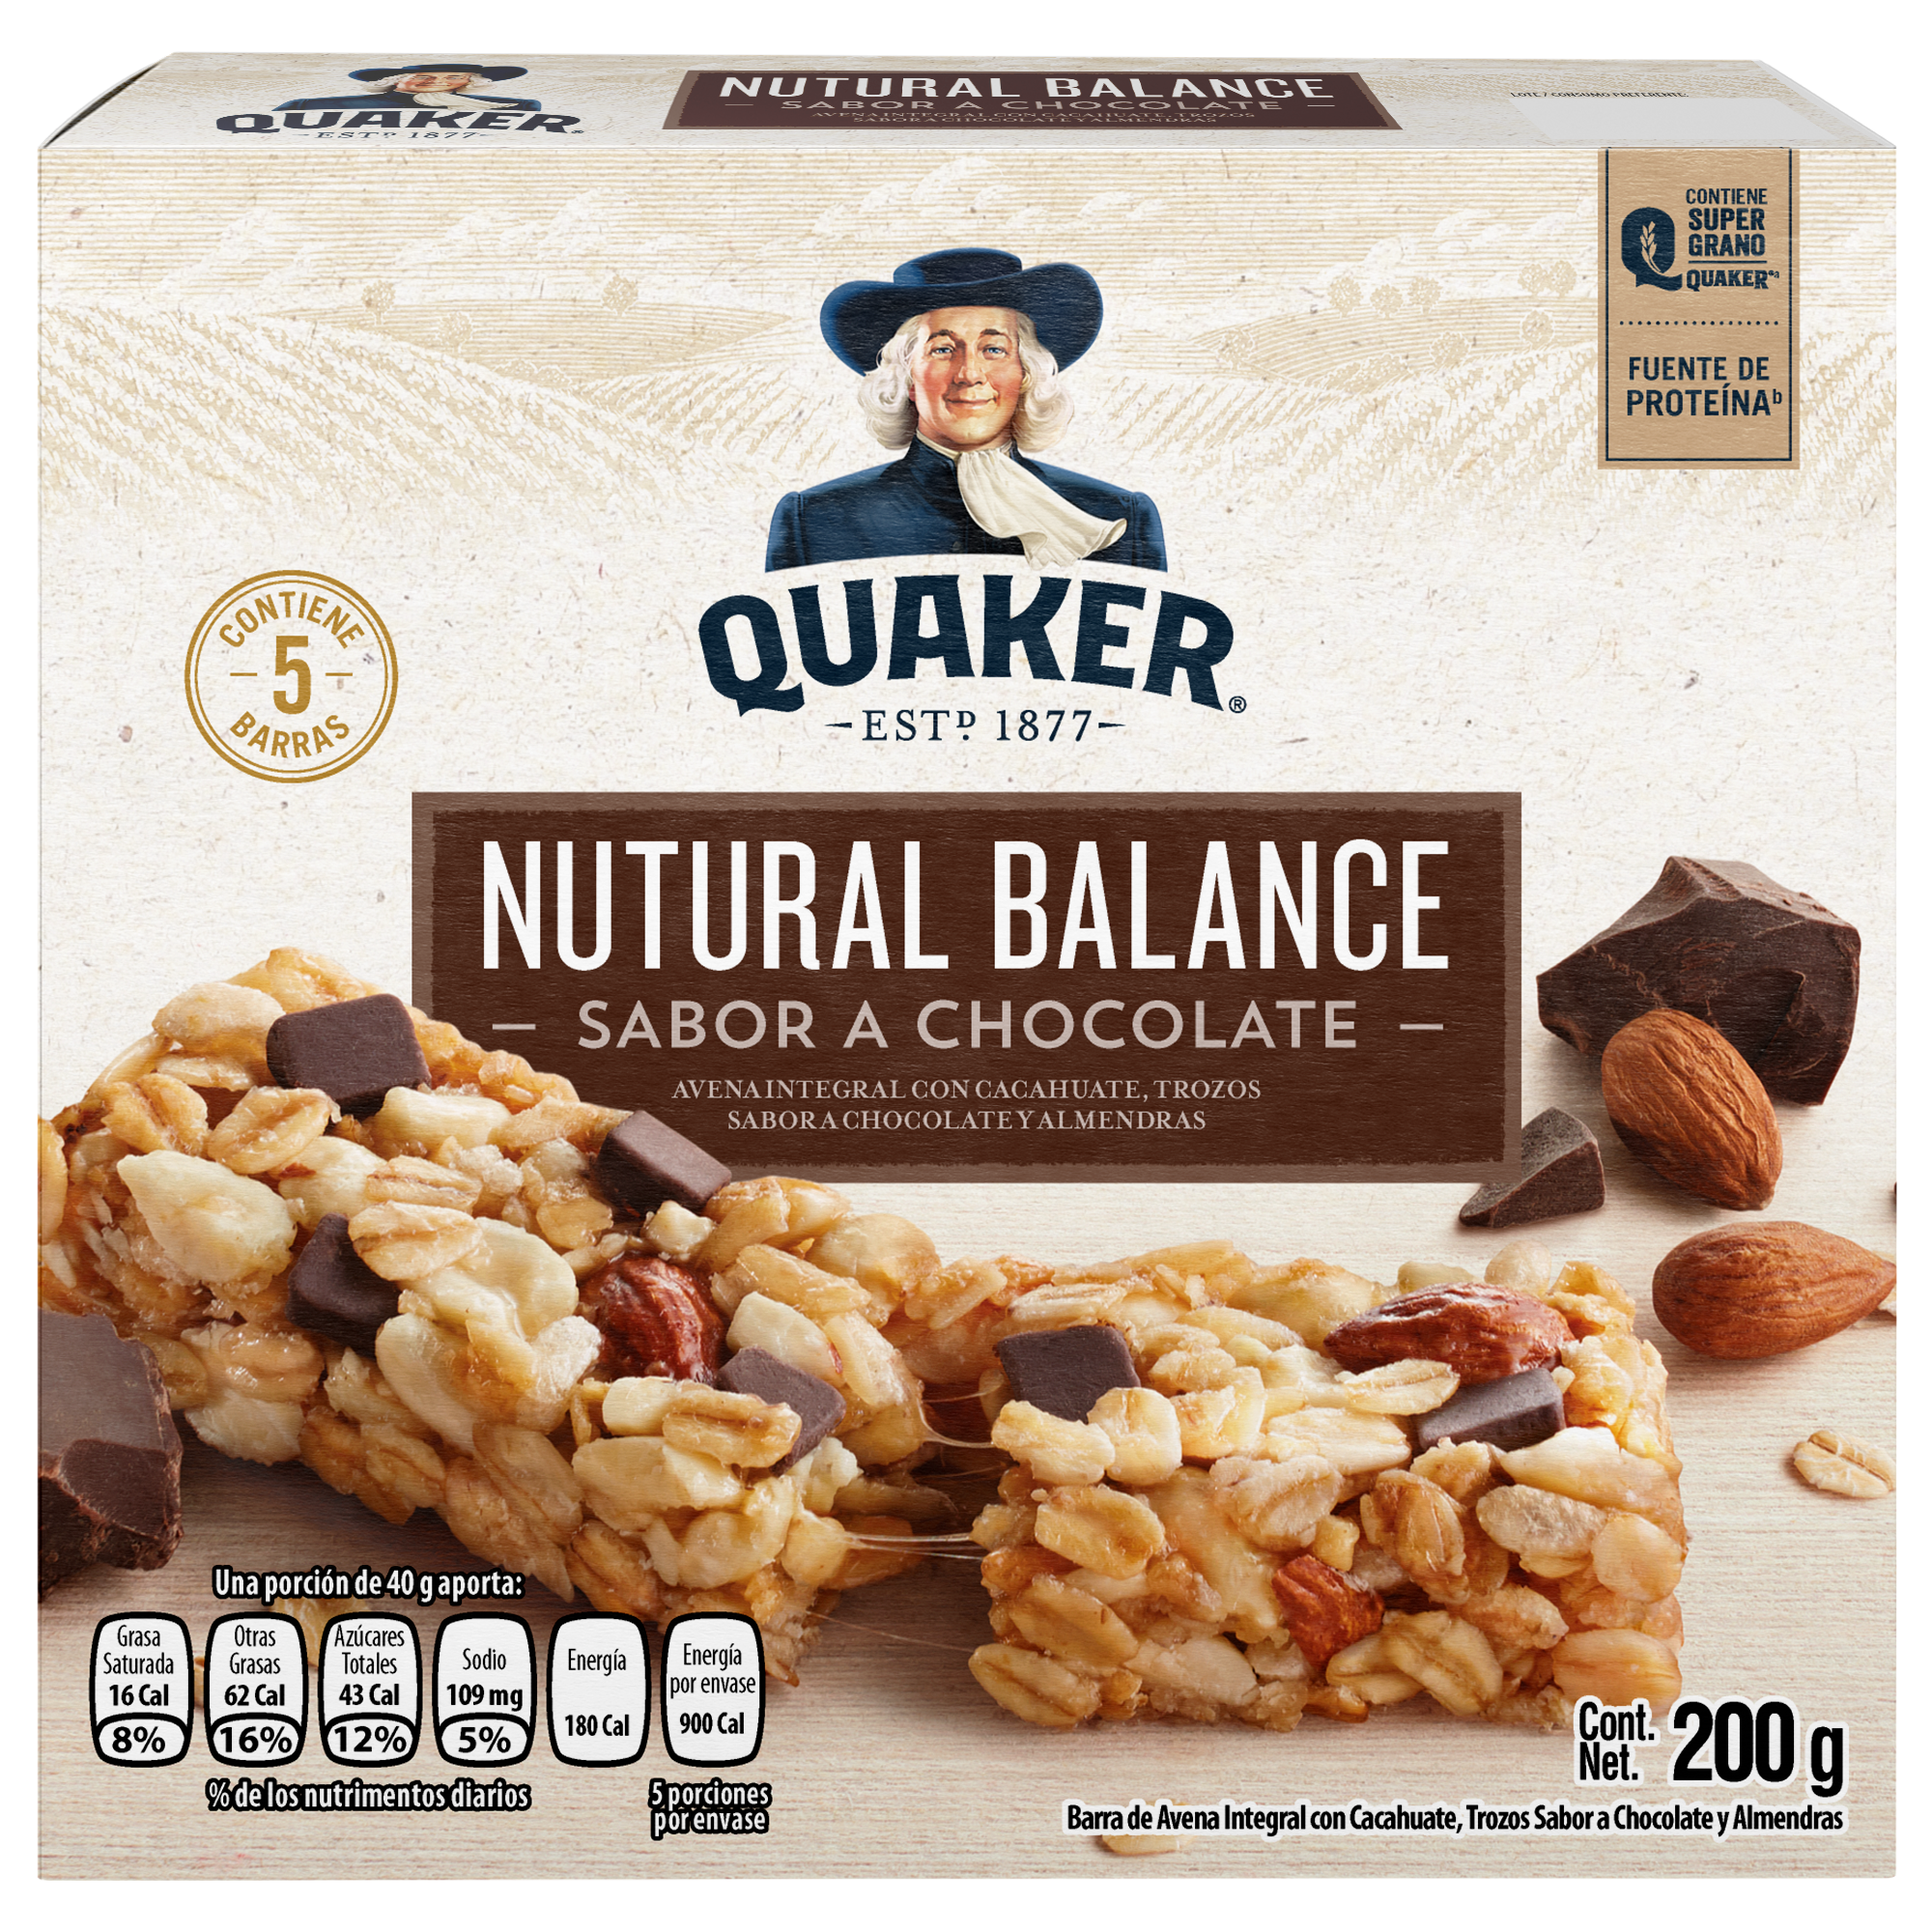 Nutural Balance Chocolate